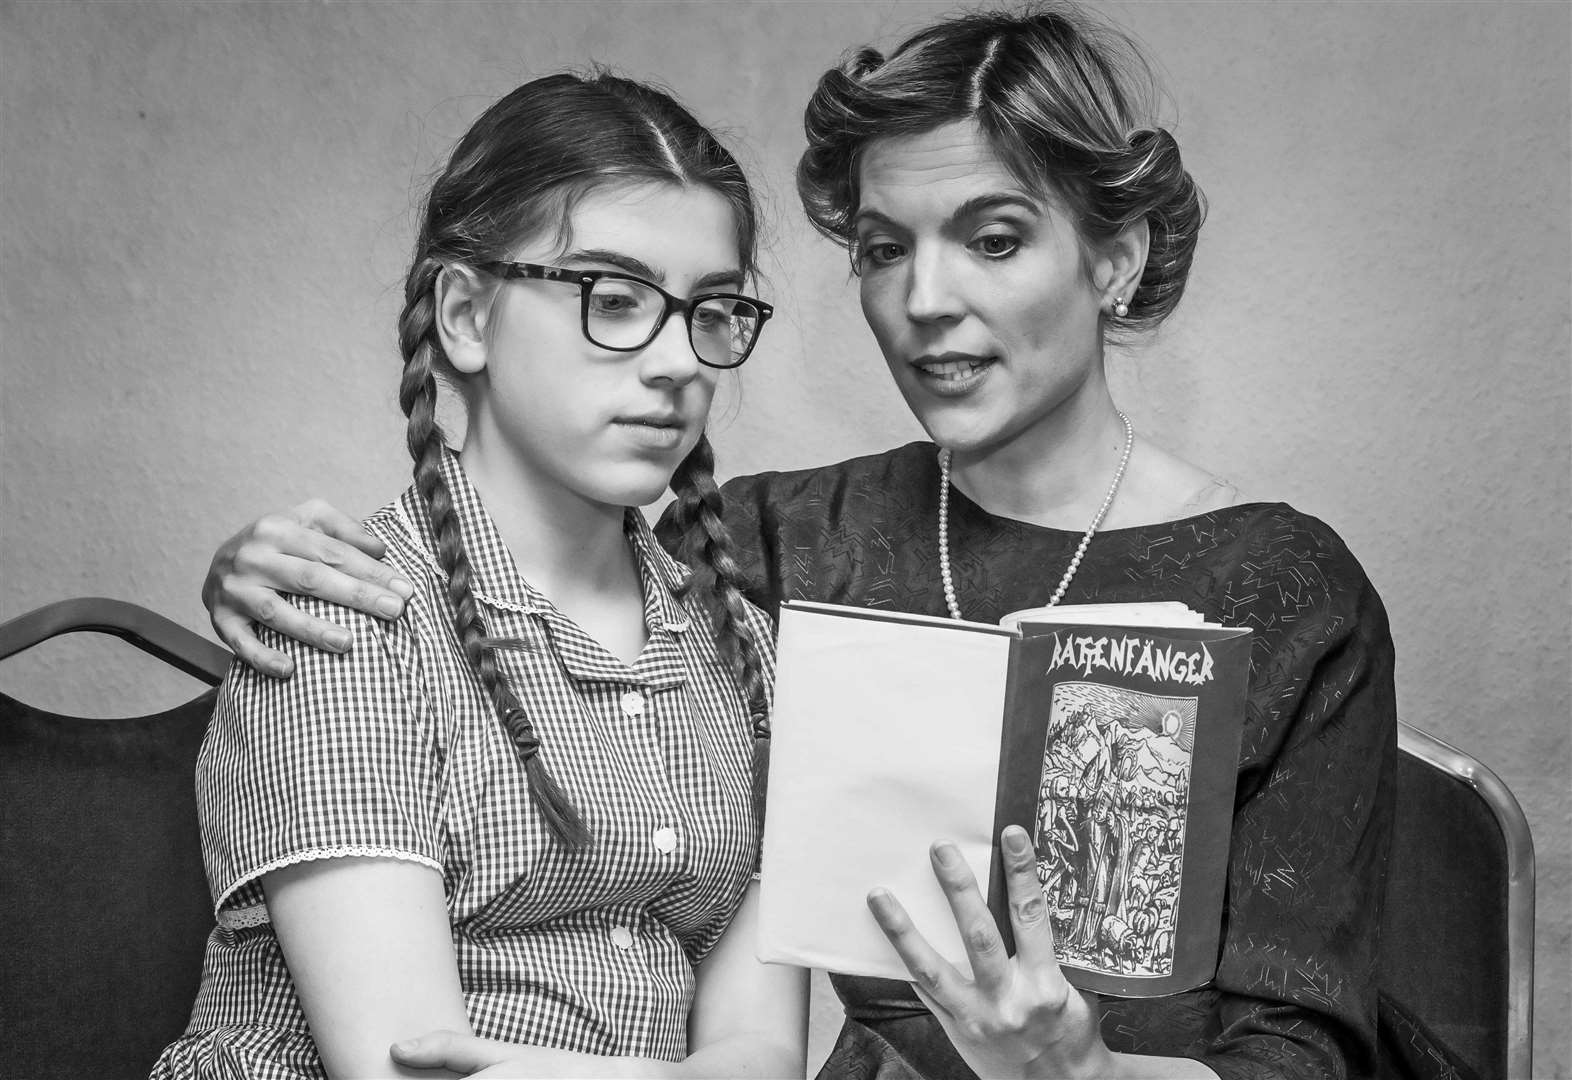 Mum and daughter team up for moving, must watch play on holocaust